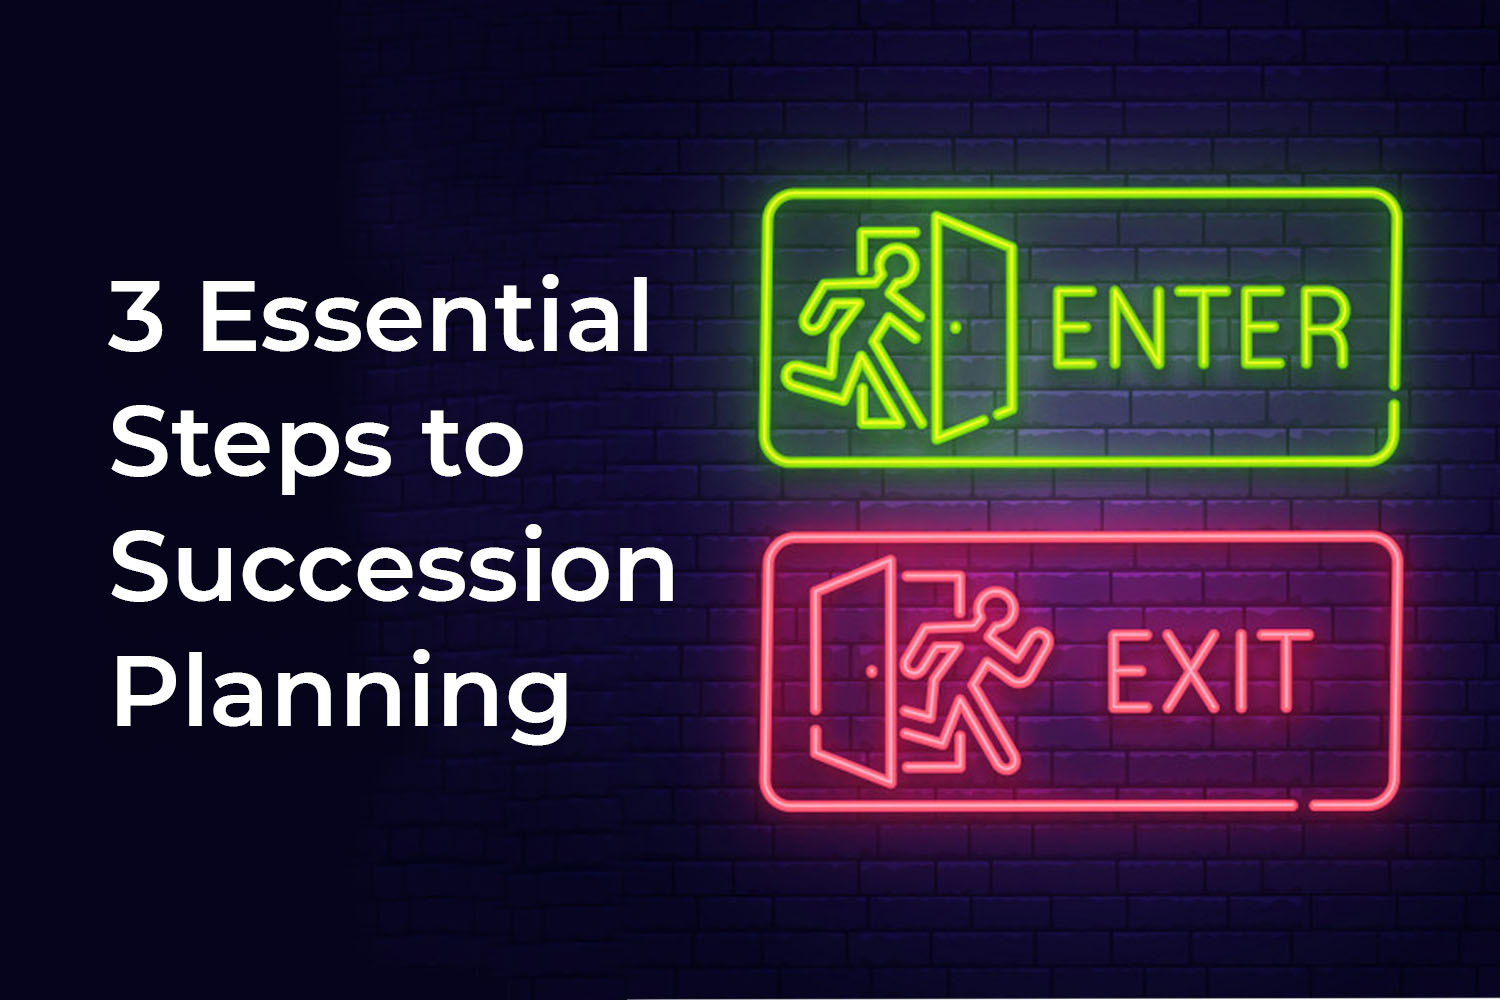 3 Essential Steps to Succession Planning